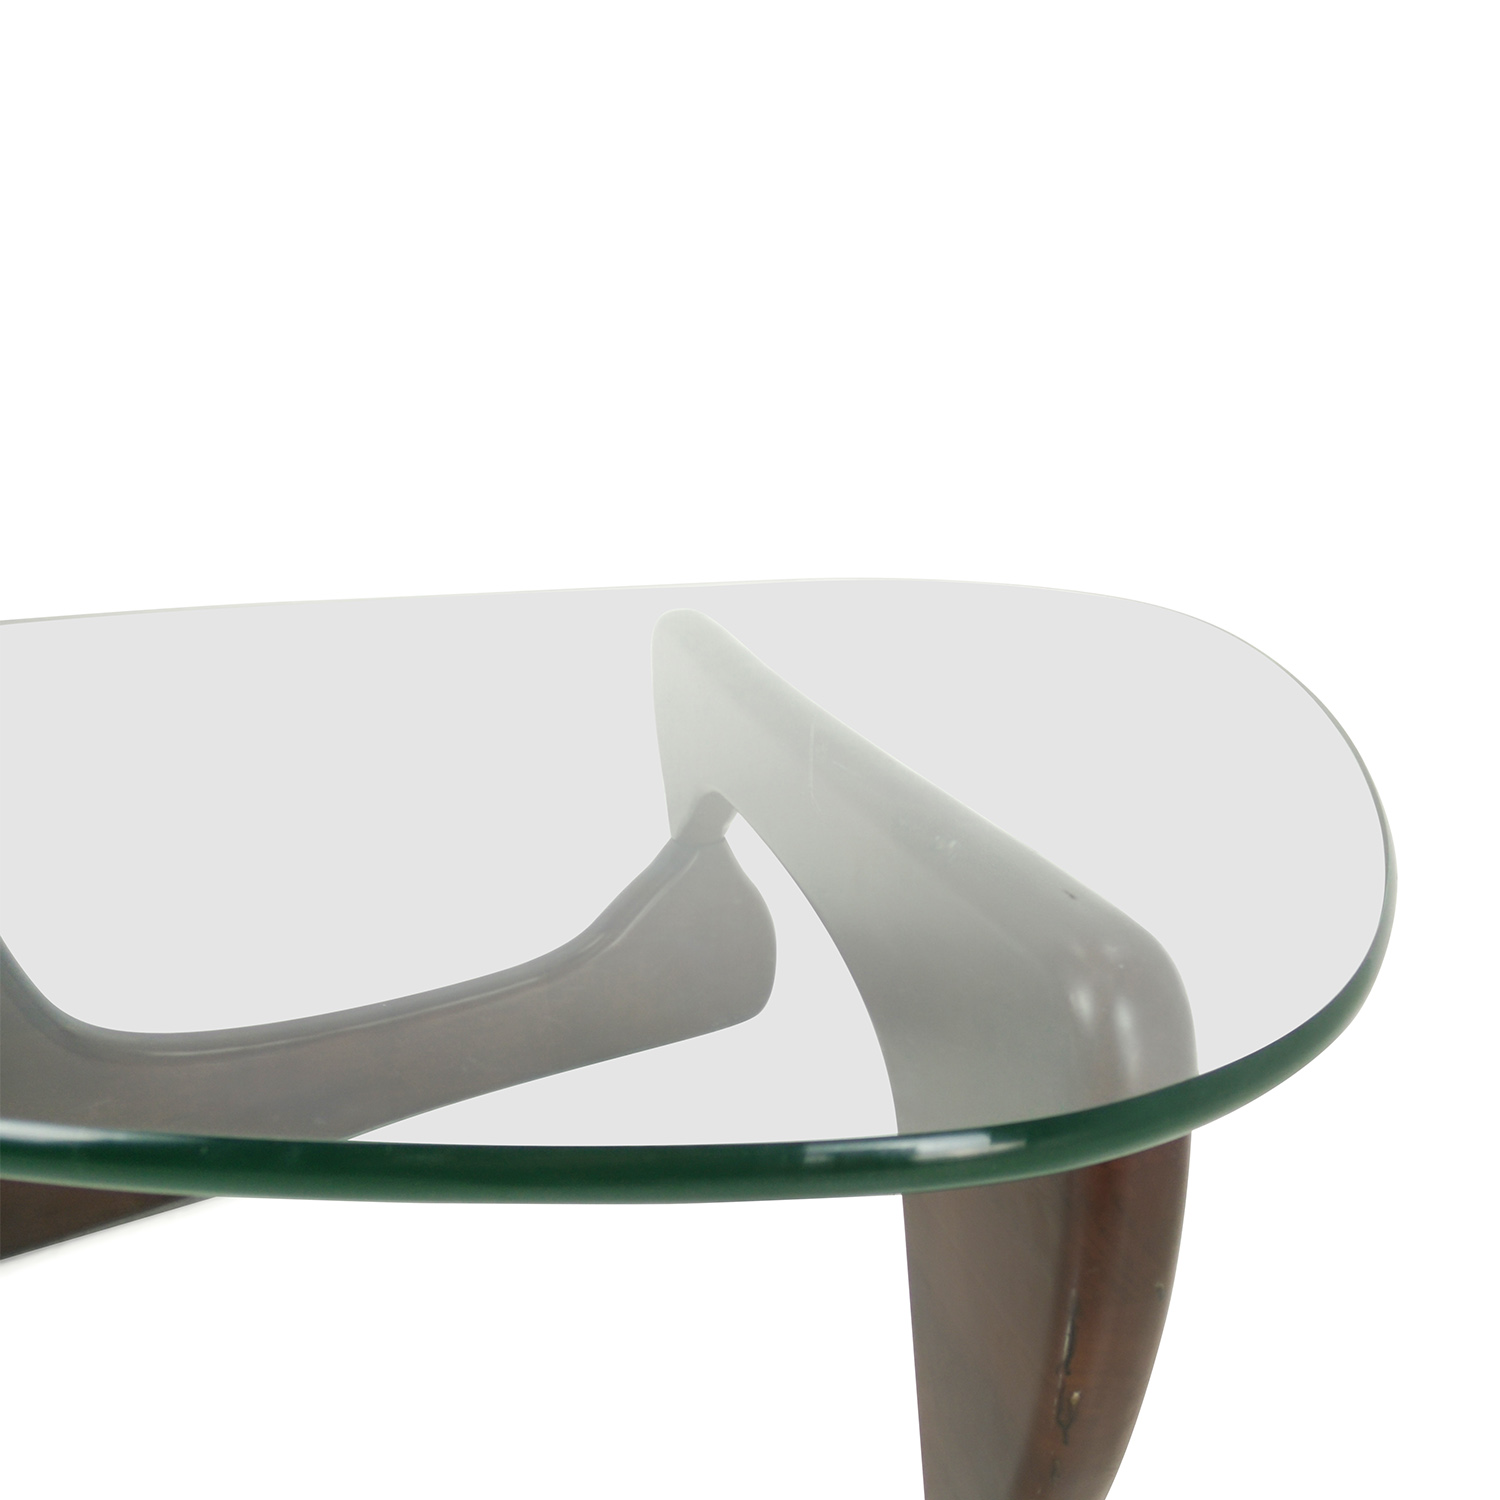 83% OFF Herman Miller Replica Noguchi Table Replica Tables